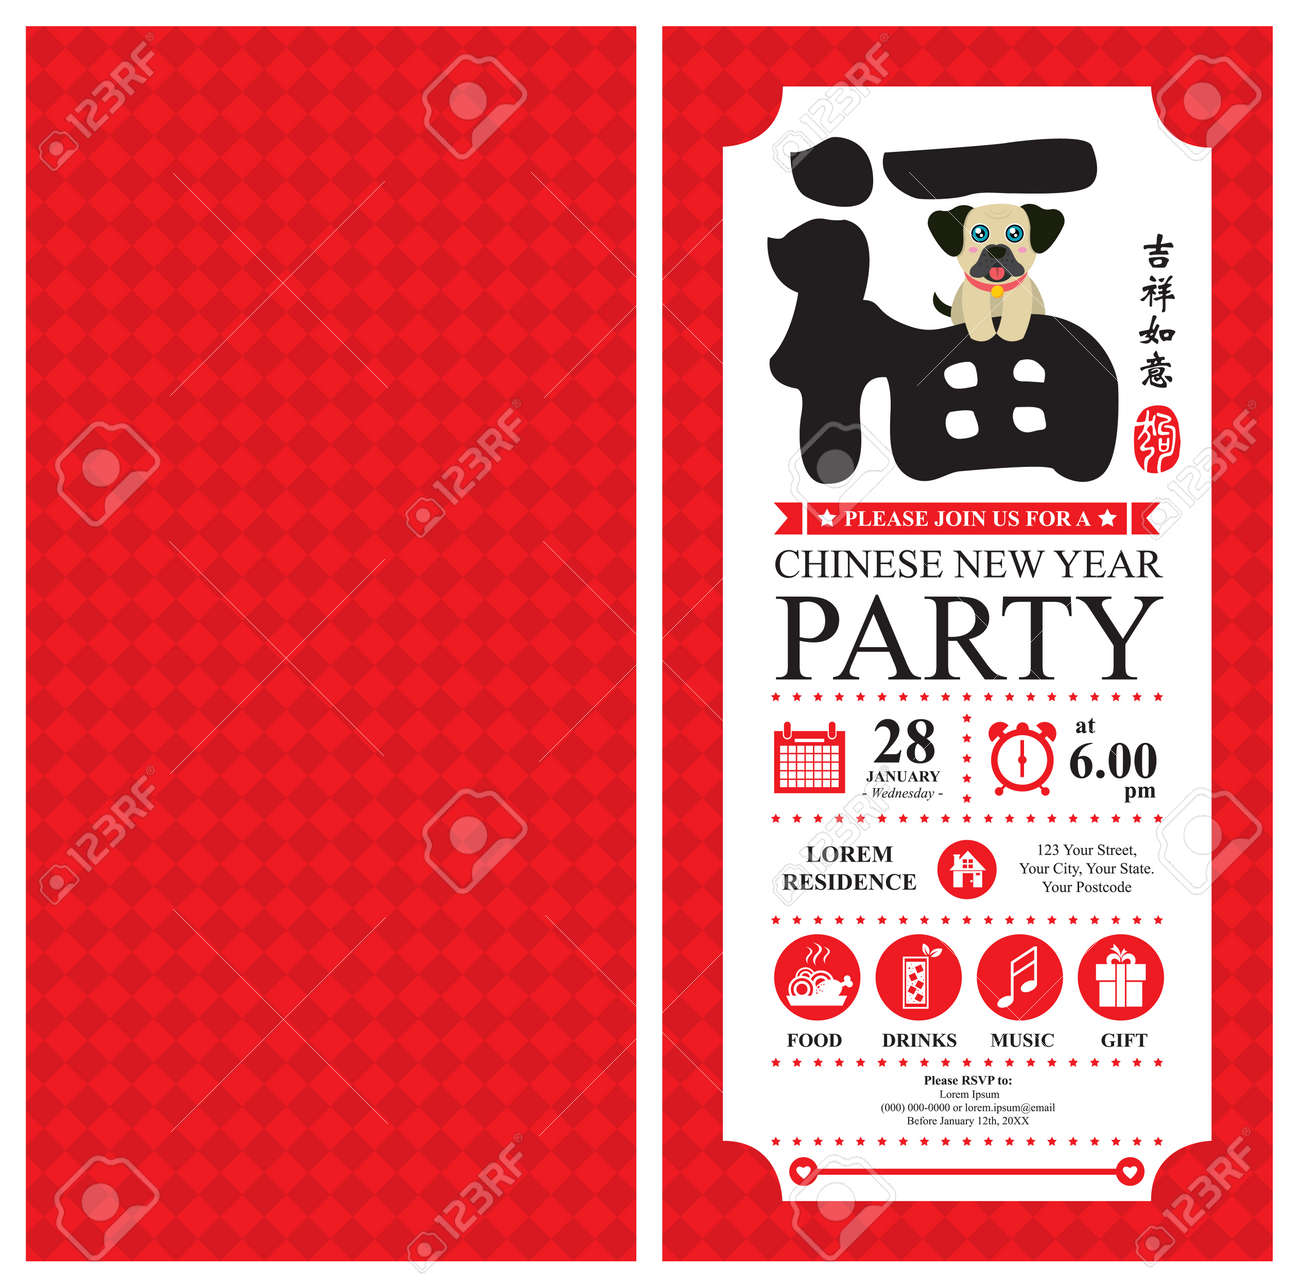 chinese new year invitation card year of the dog celebration stock vector 89429376